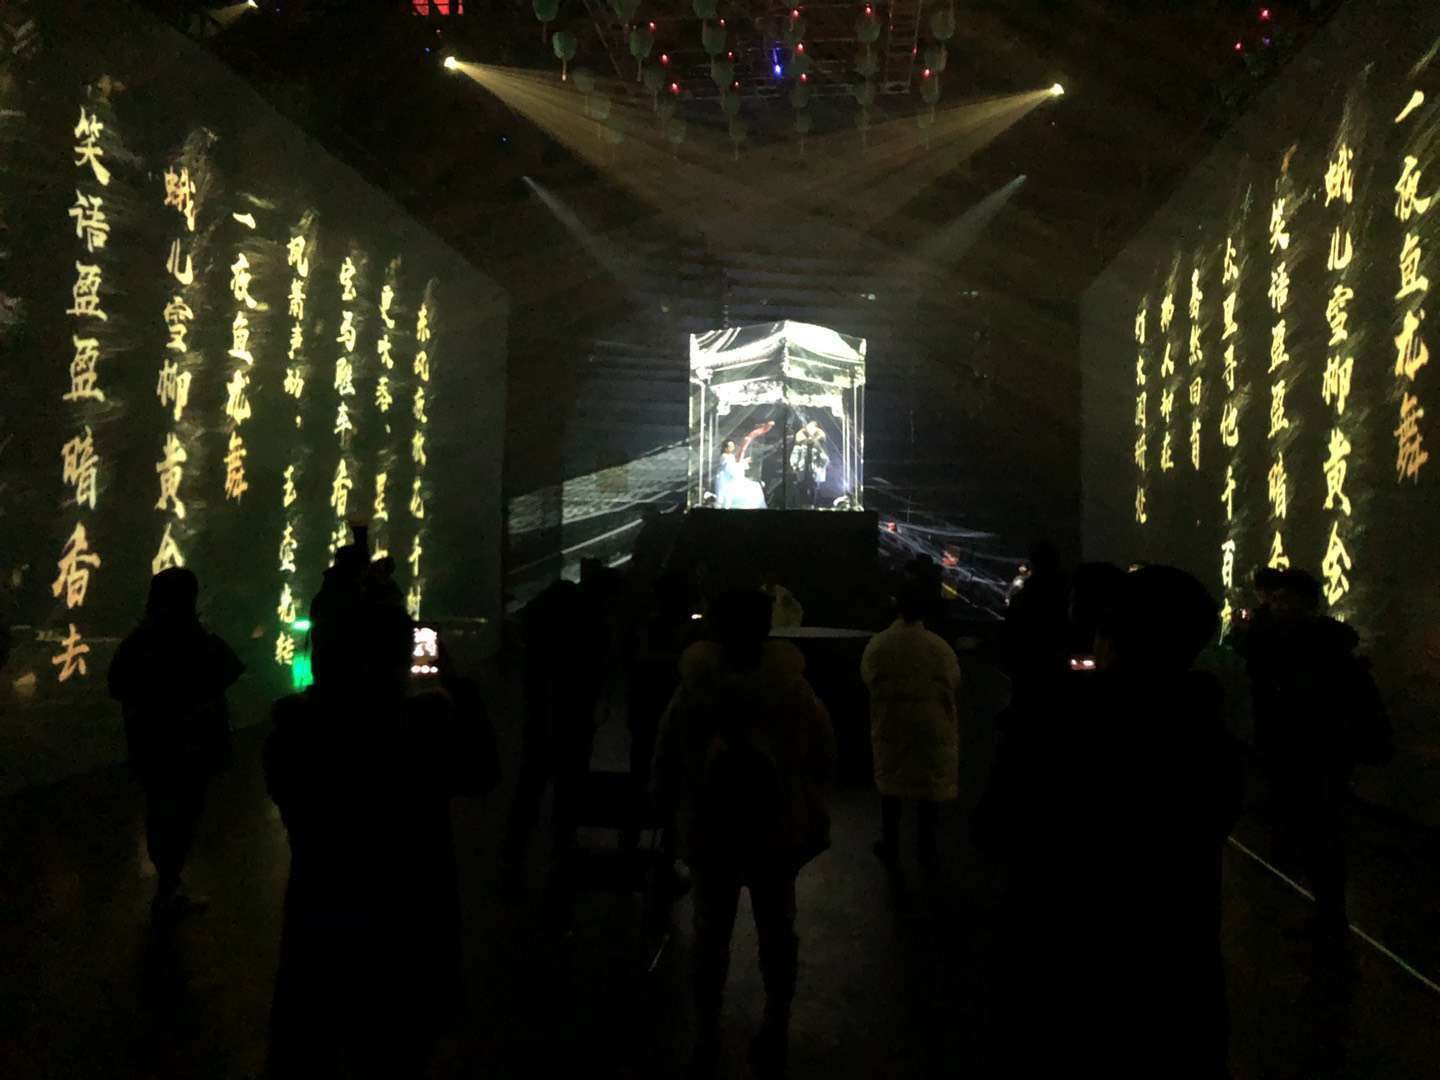 3D Holographic mesh projection system Holo Gauze For Live Show